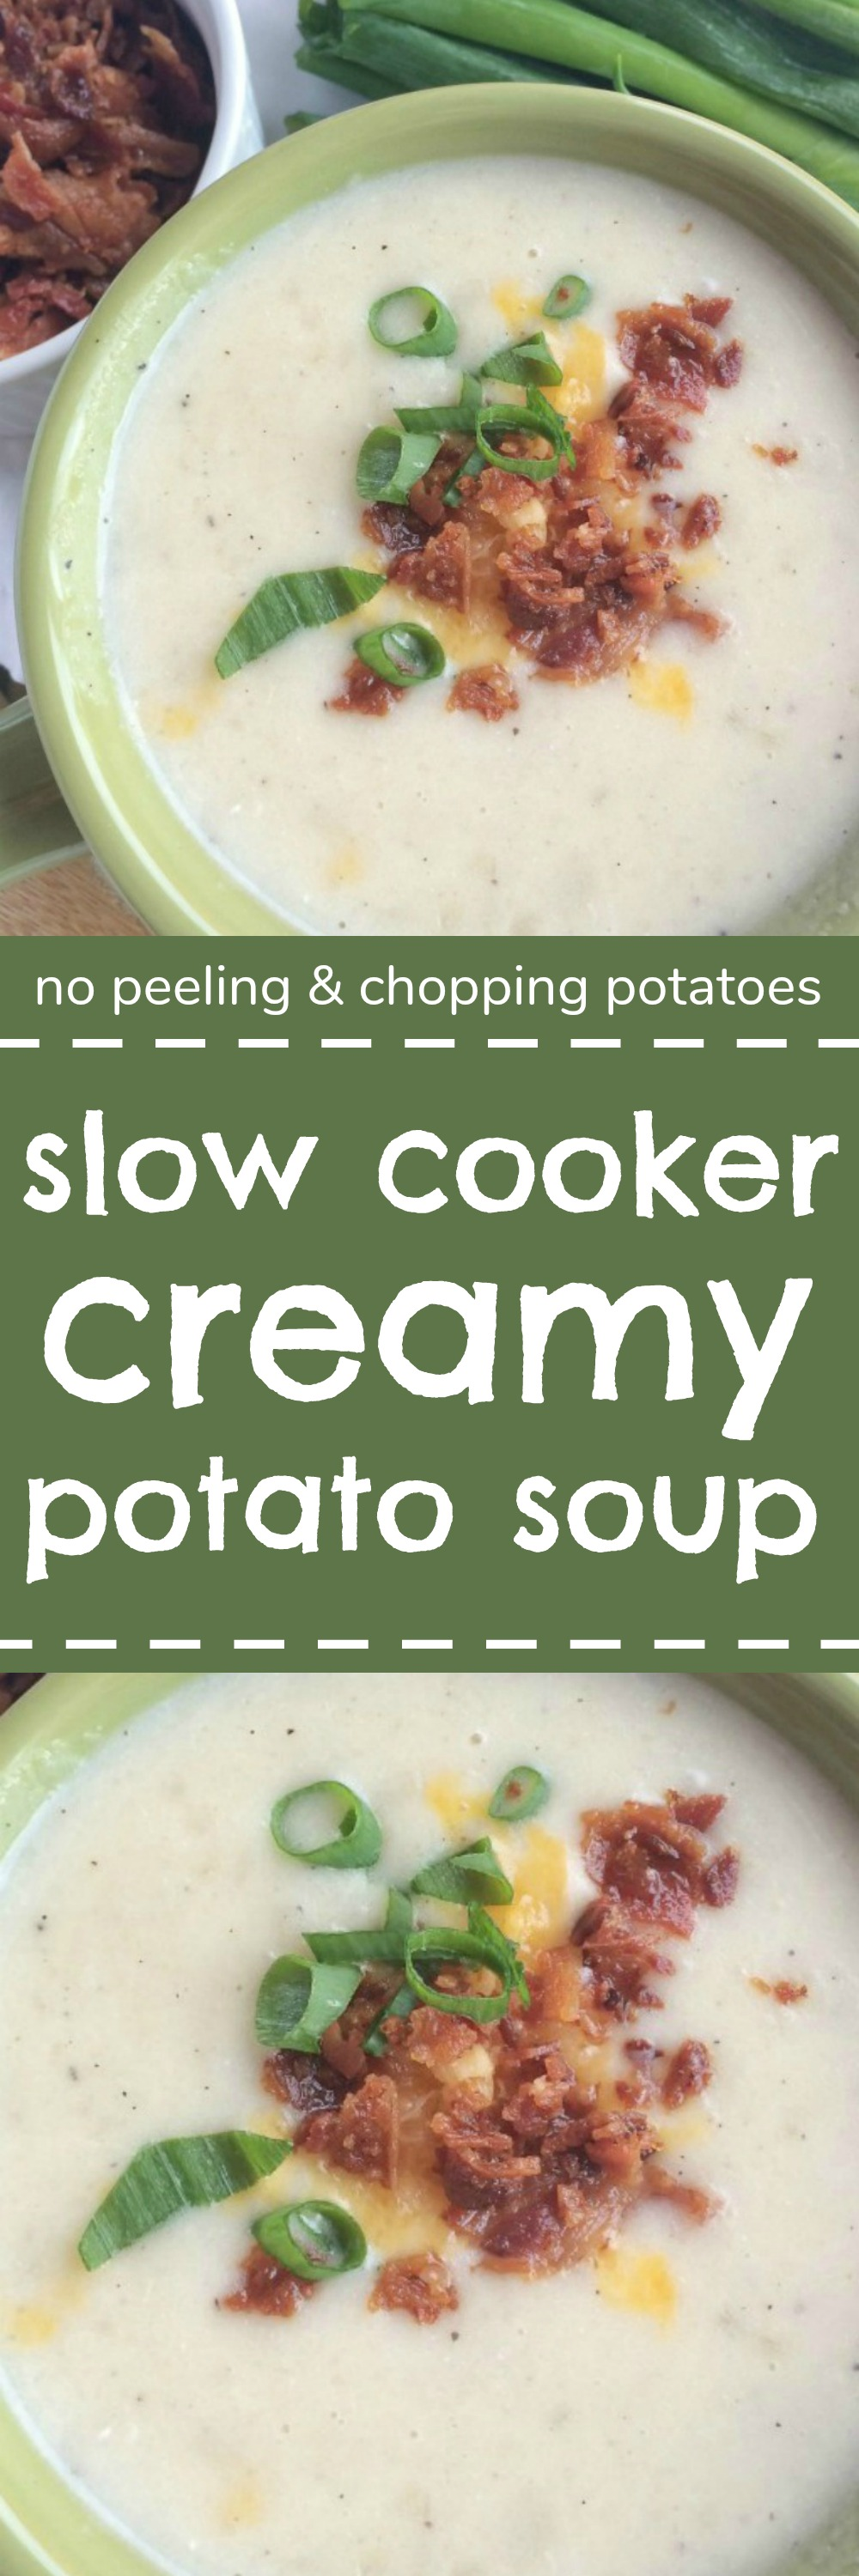 Slow Cooker Creamy Potato Soup - Together as Family